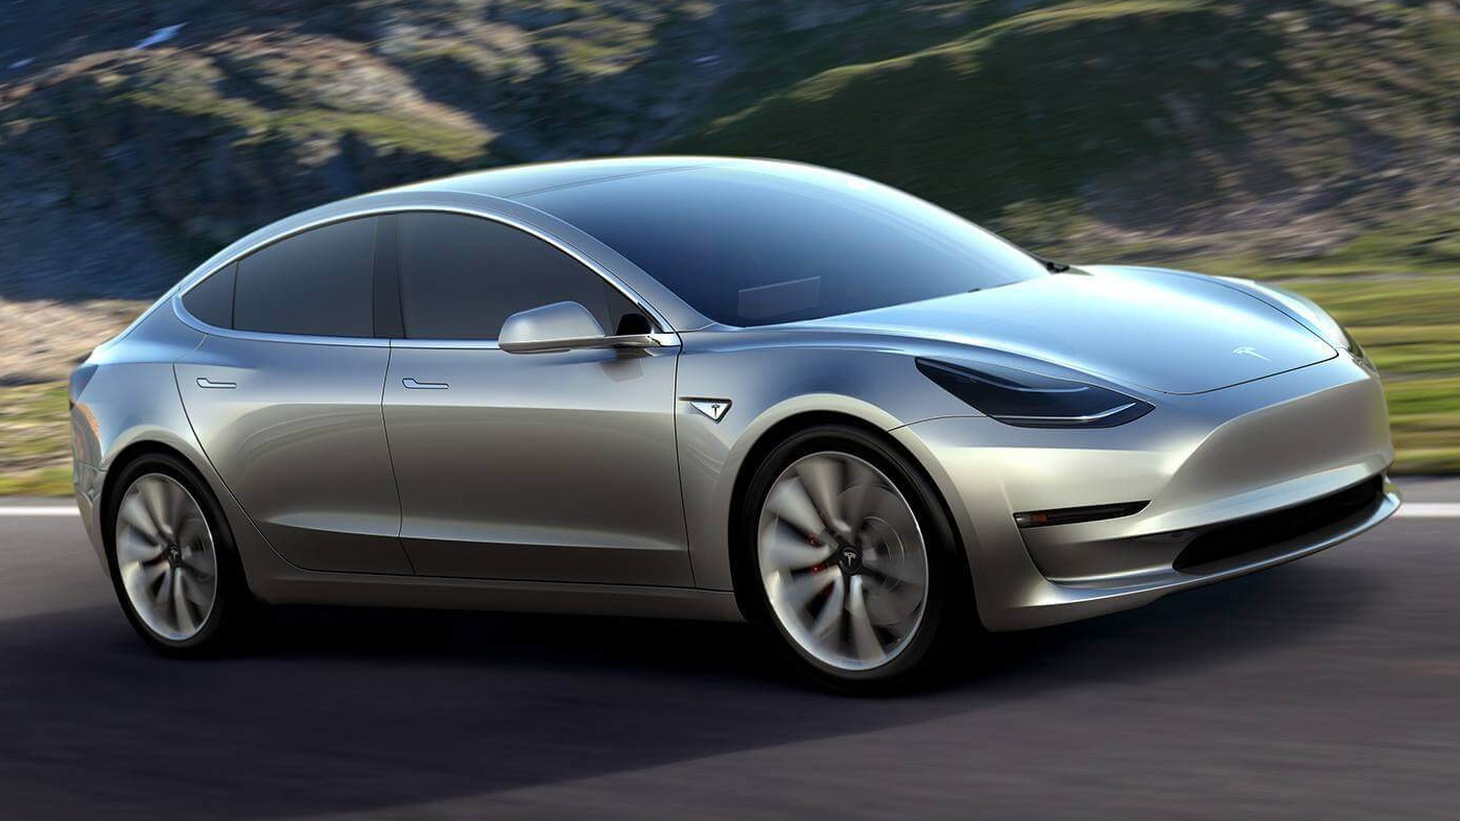 Last night, Elon Musk unveiled the Tesla Model 3, the car Musk believes will change the world. Could it?